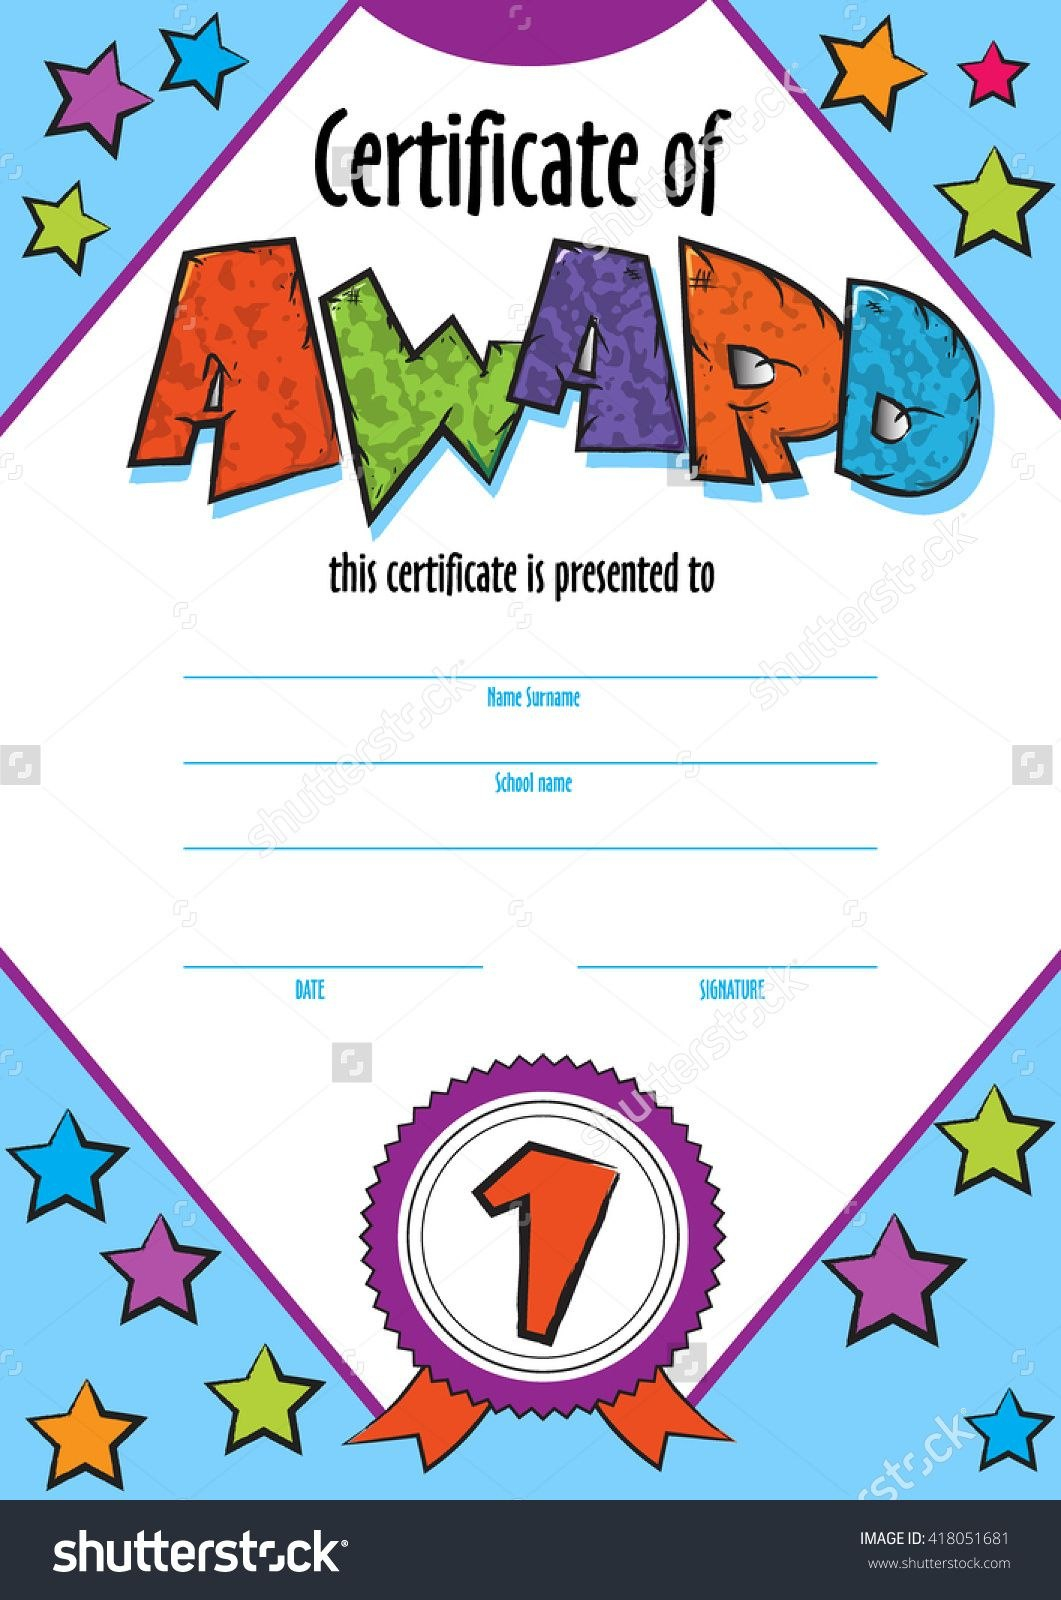 Template Child Certificate To Be Awarded Kindergarten Preschool Pertaining To Children's Certificate Template